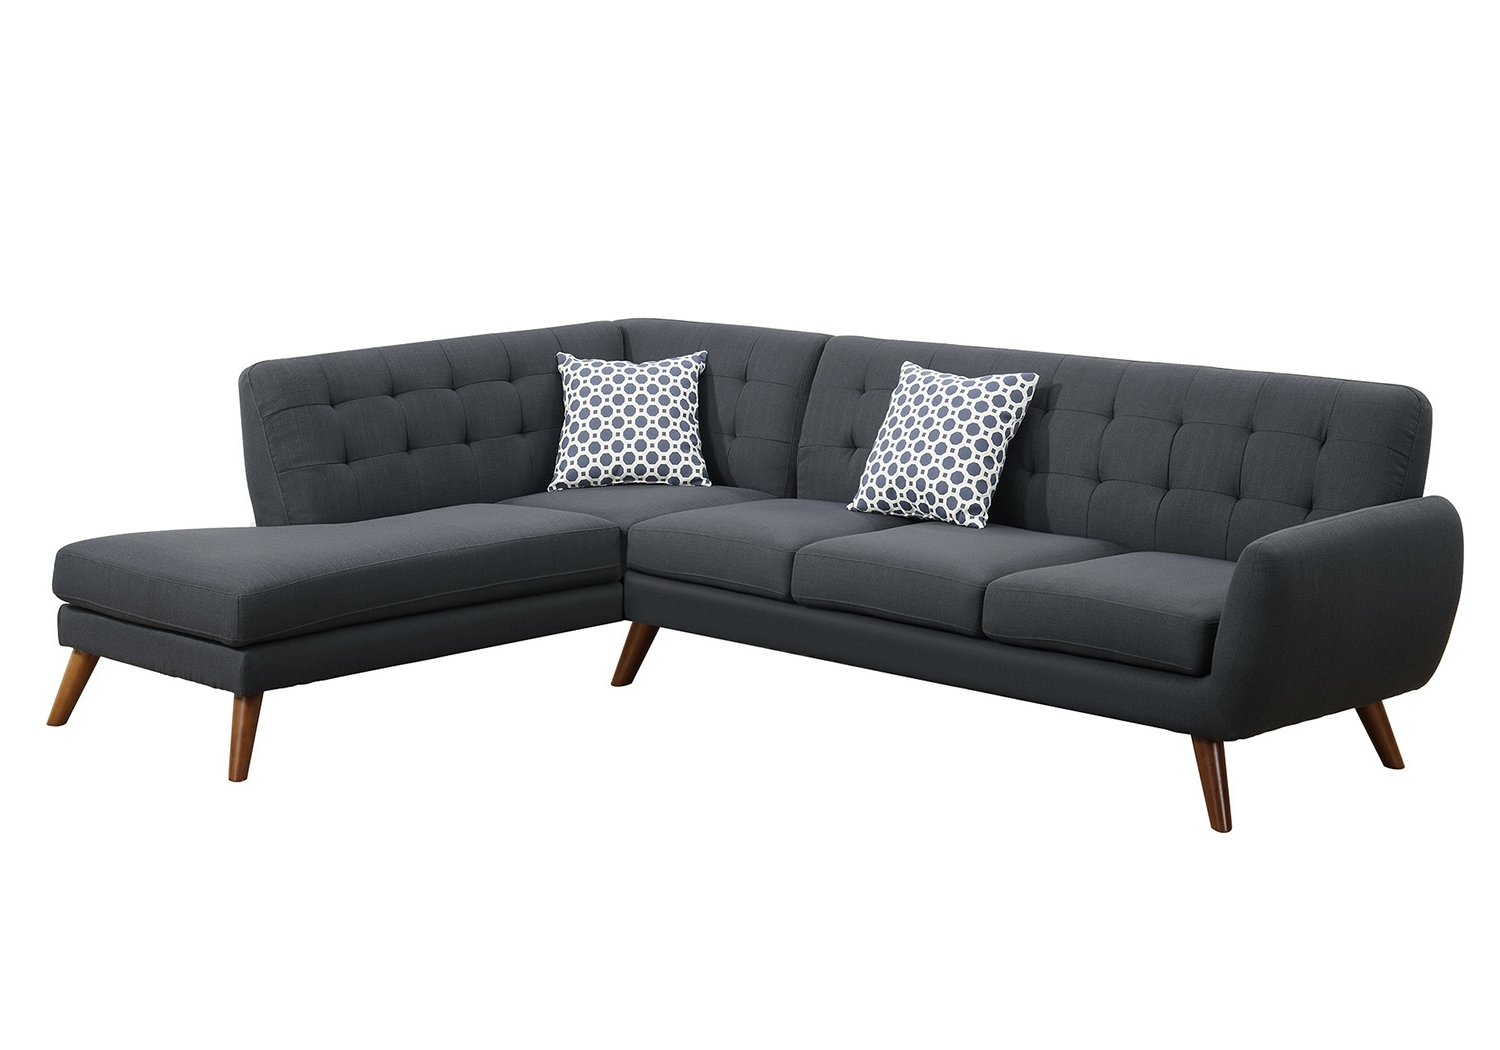 2018 Best Couches Under $1500 Inside Sectional Sofas Under (View 6 of 15)